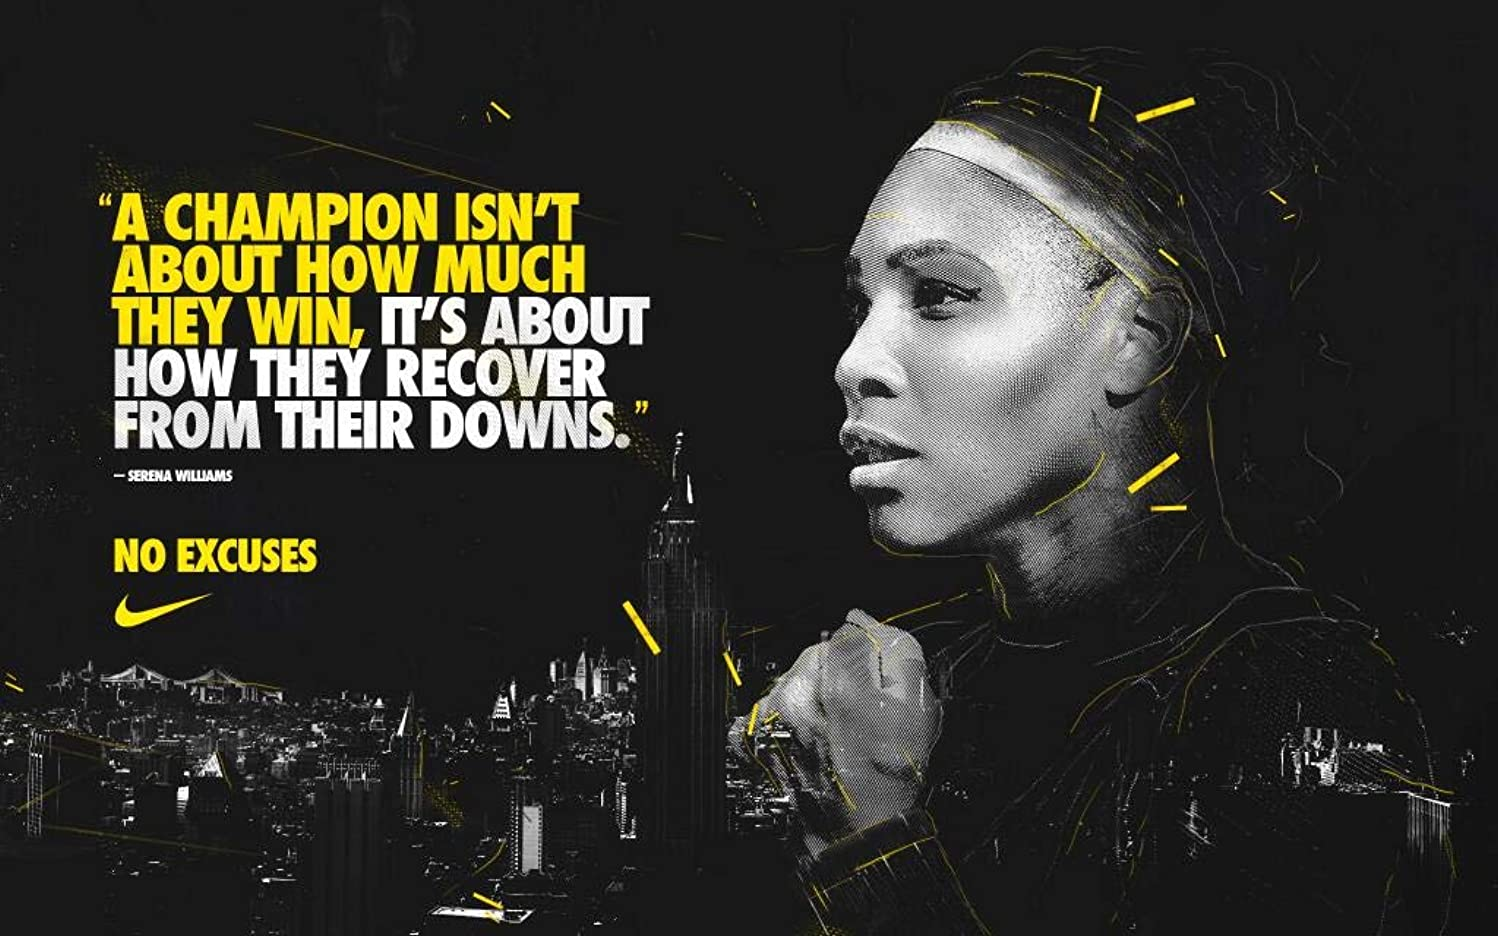 United Mart Poster Serena Williams Quotes Tennis Player Album Cover Poster Size 12 x 18 Inch Rolled Poster